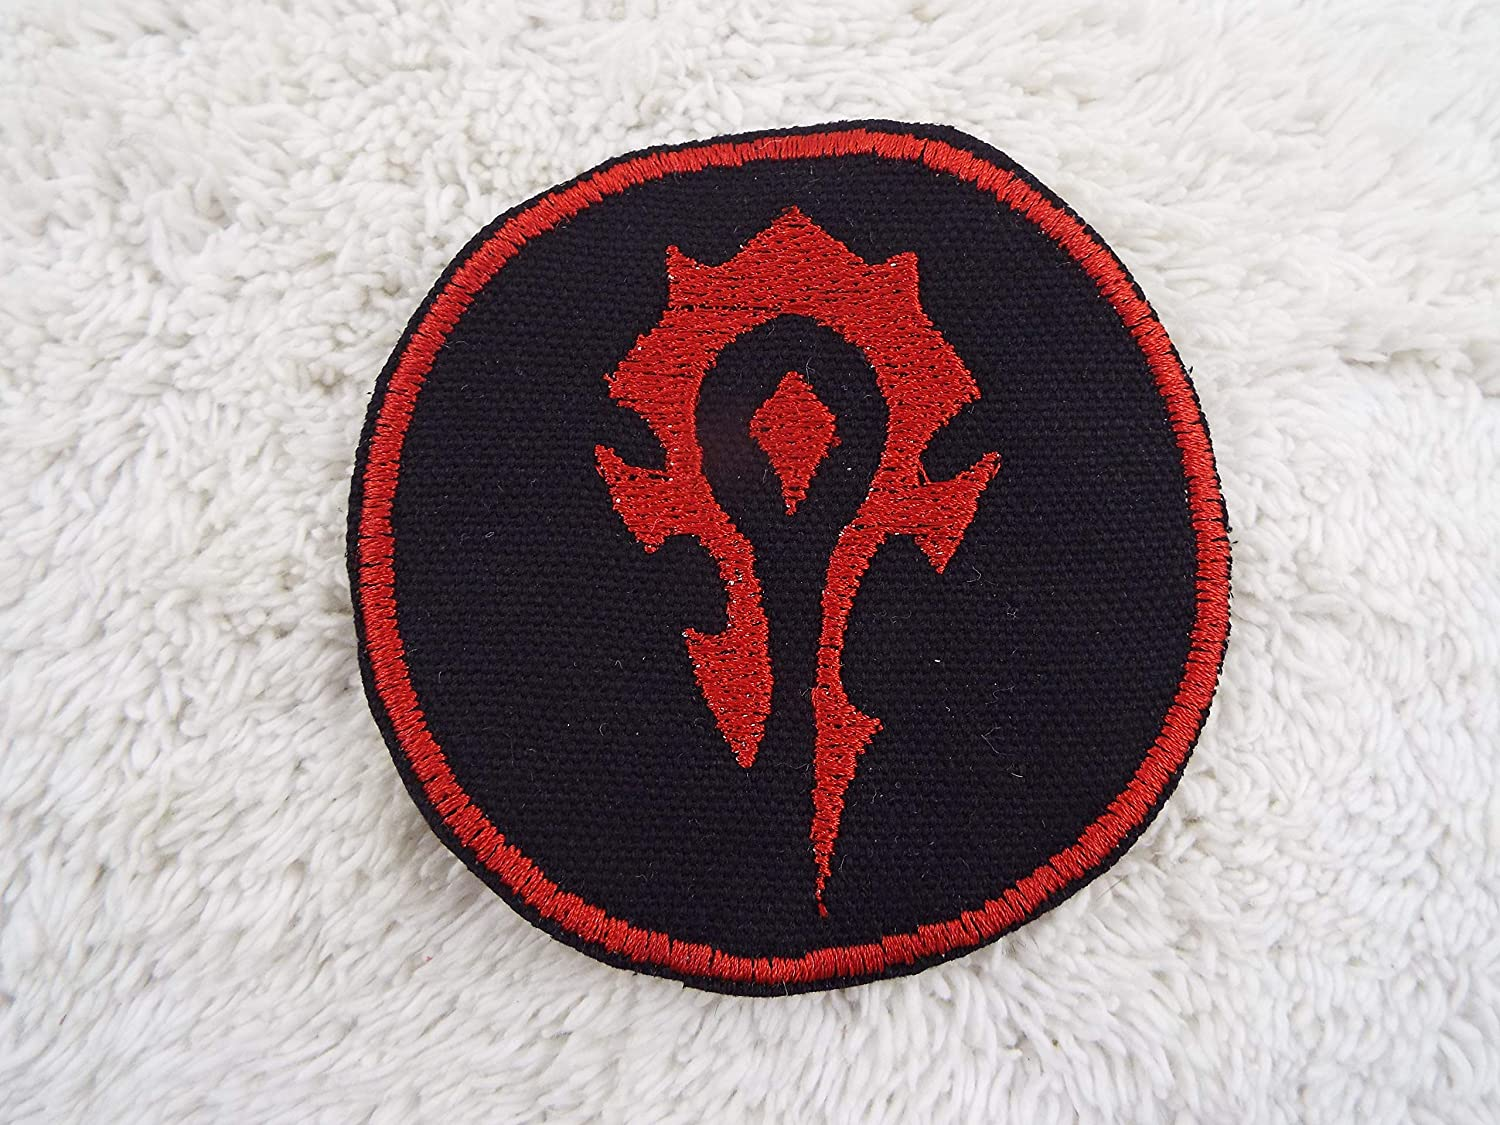 World of Warcraft HORDE Emblem Embroidered Iron-on Patch